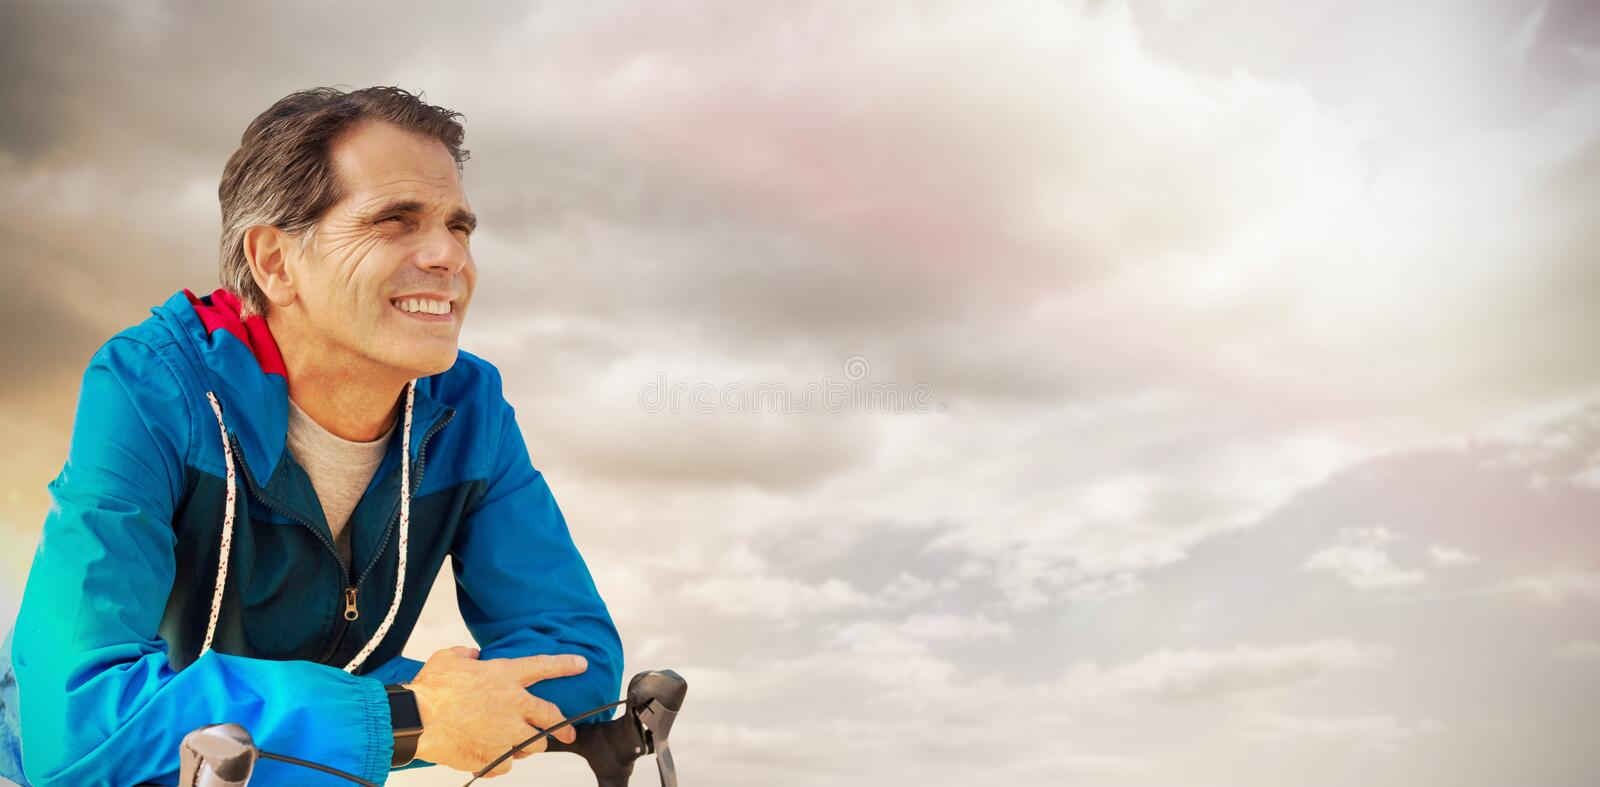 Composite image of digital composite of senior man with his bike stock photography